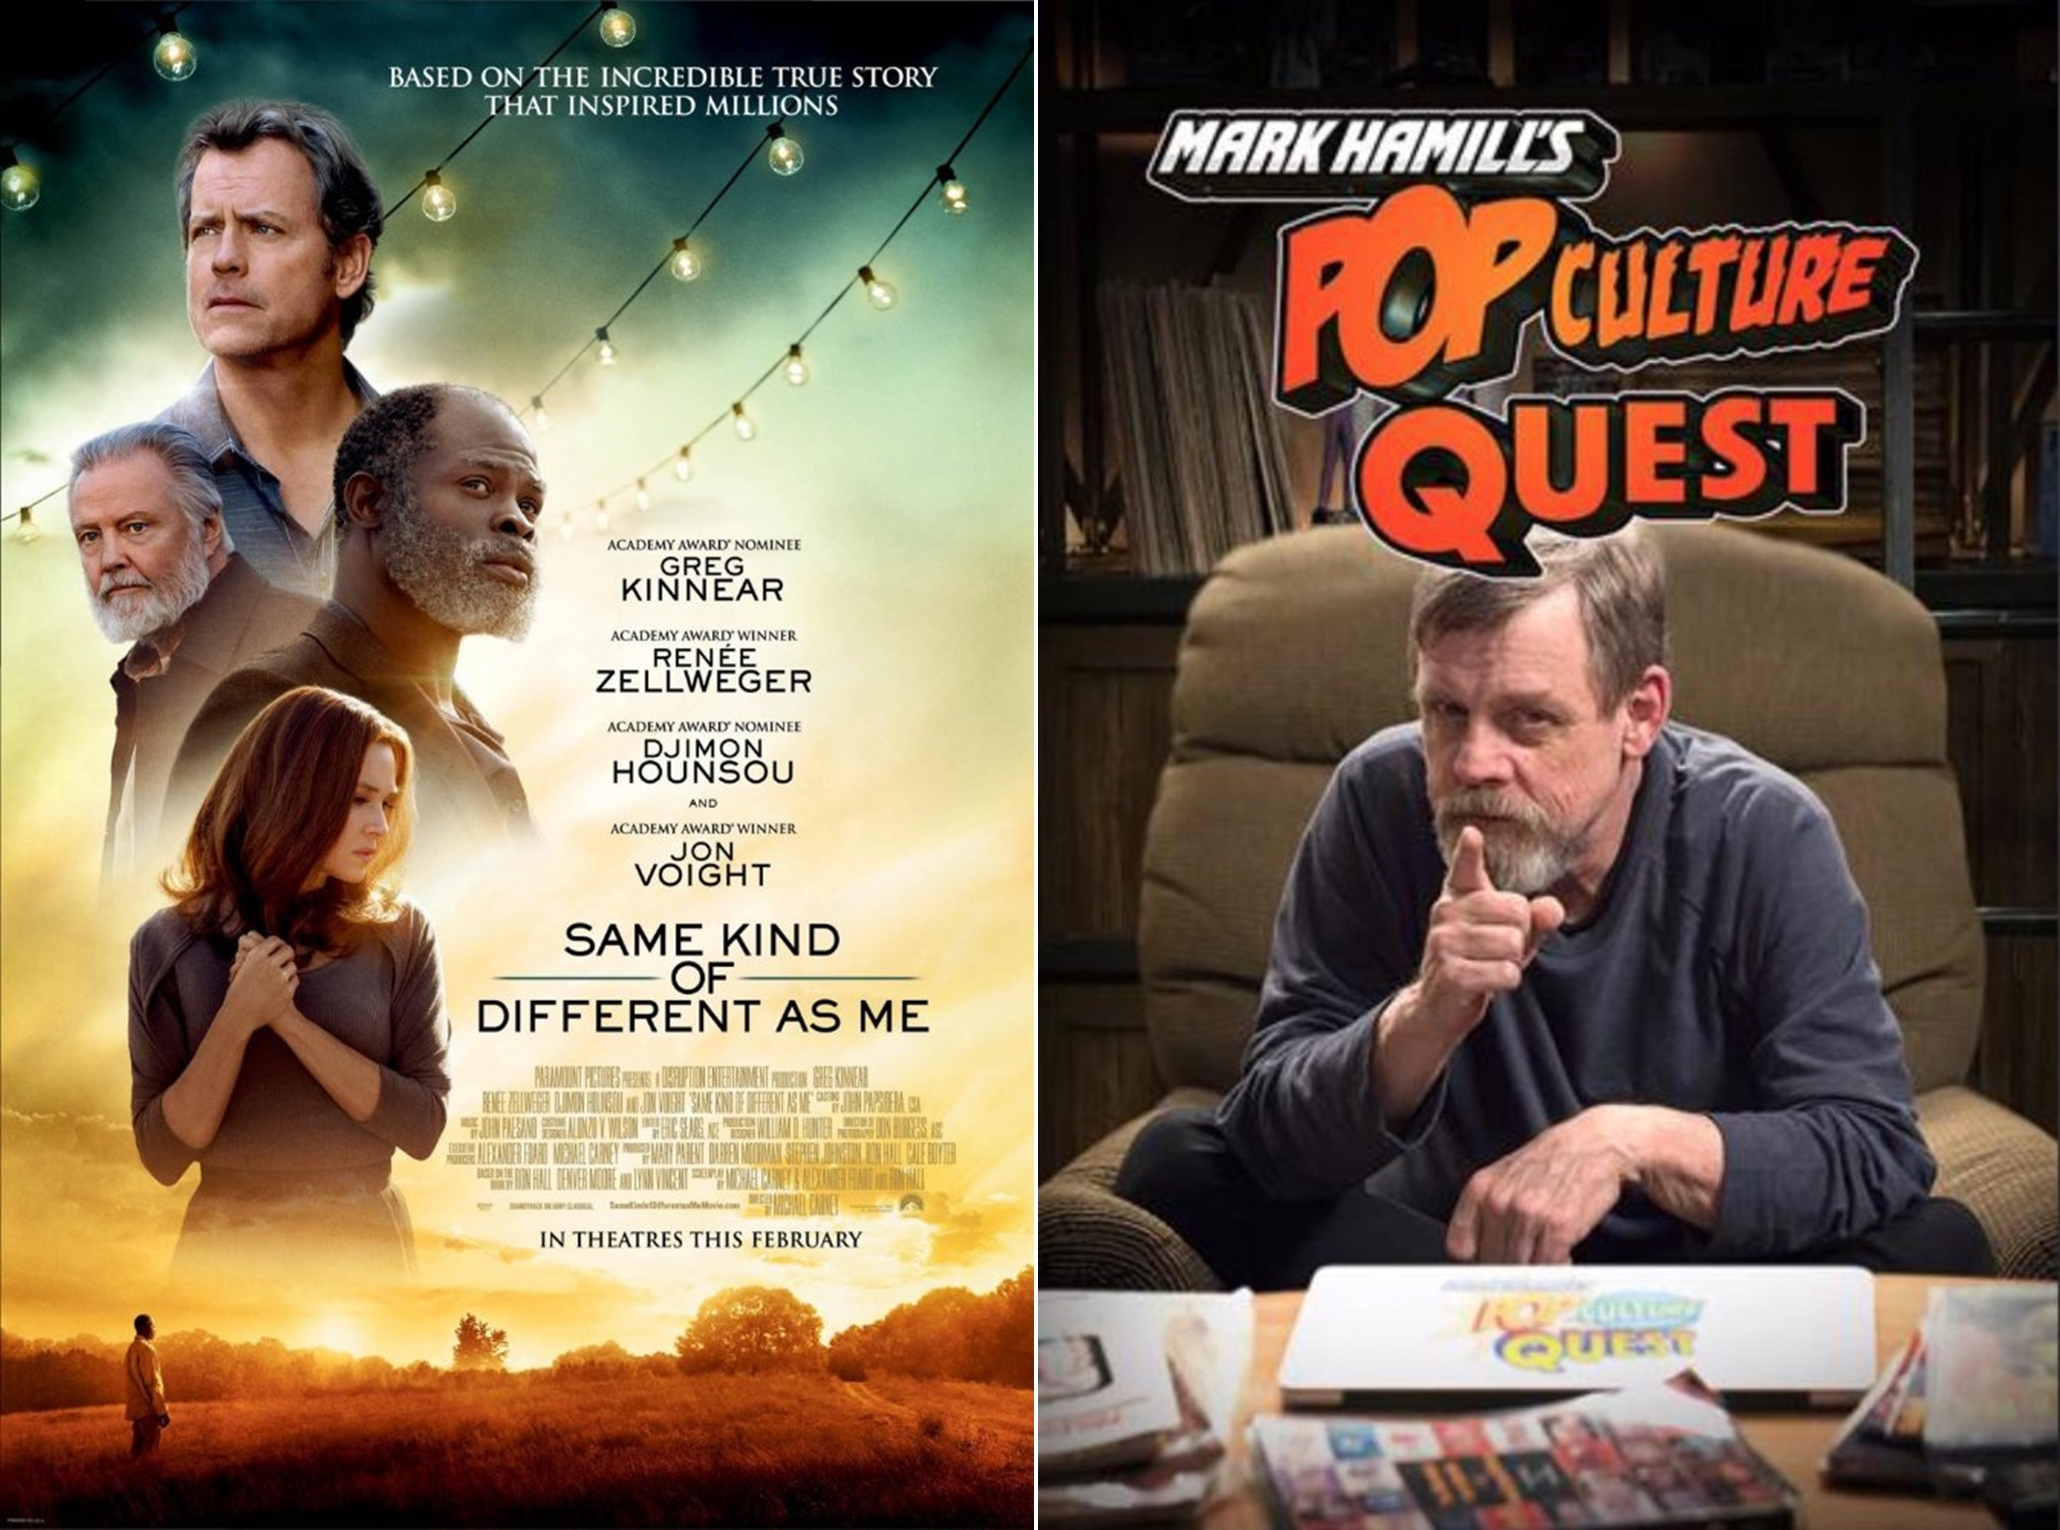 Image: (Left) 'Same Kind of Different As Me' and 'Mark Hamill's Pop Culture Quest'